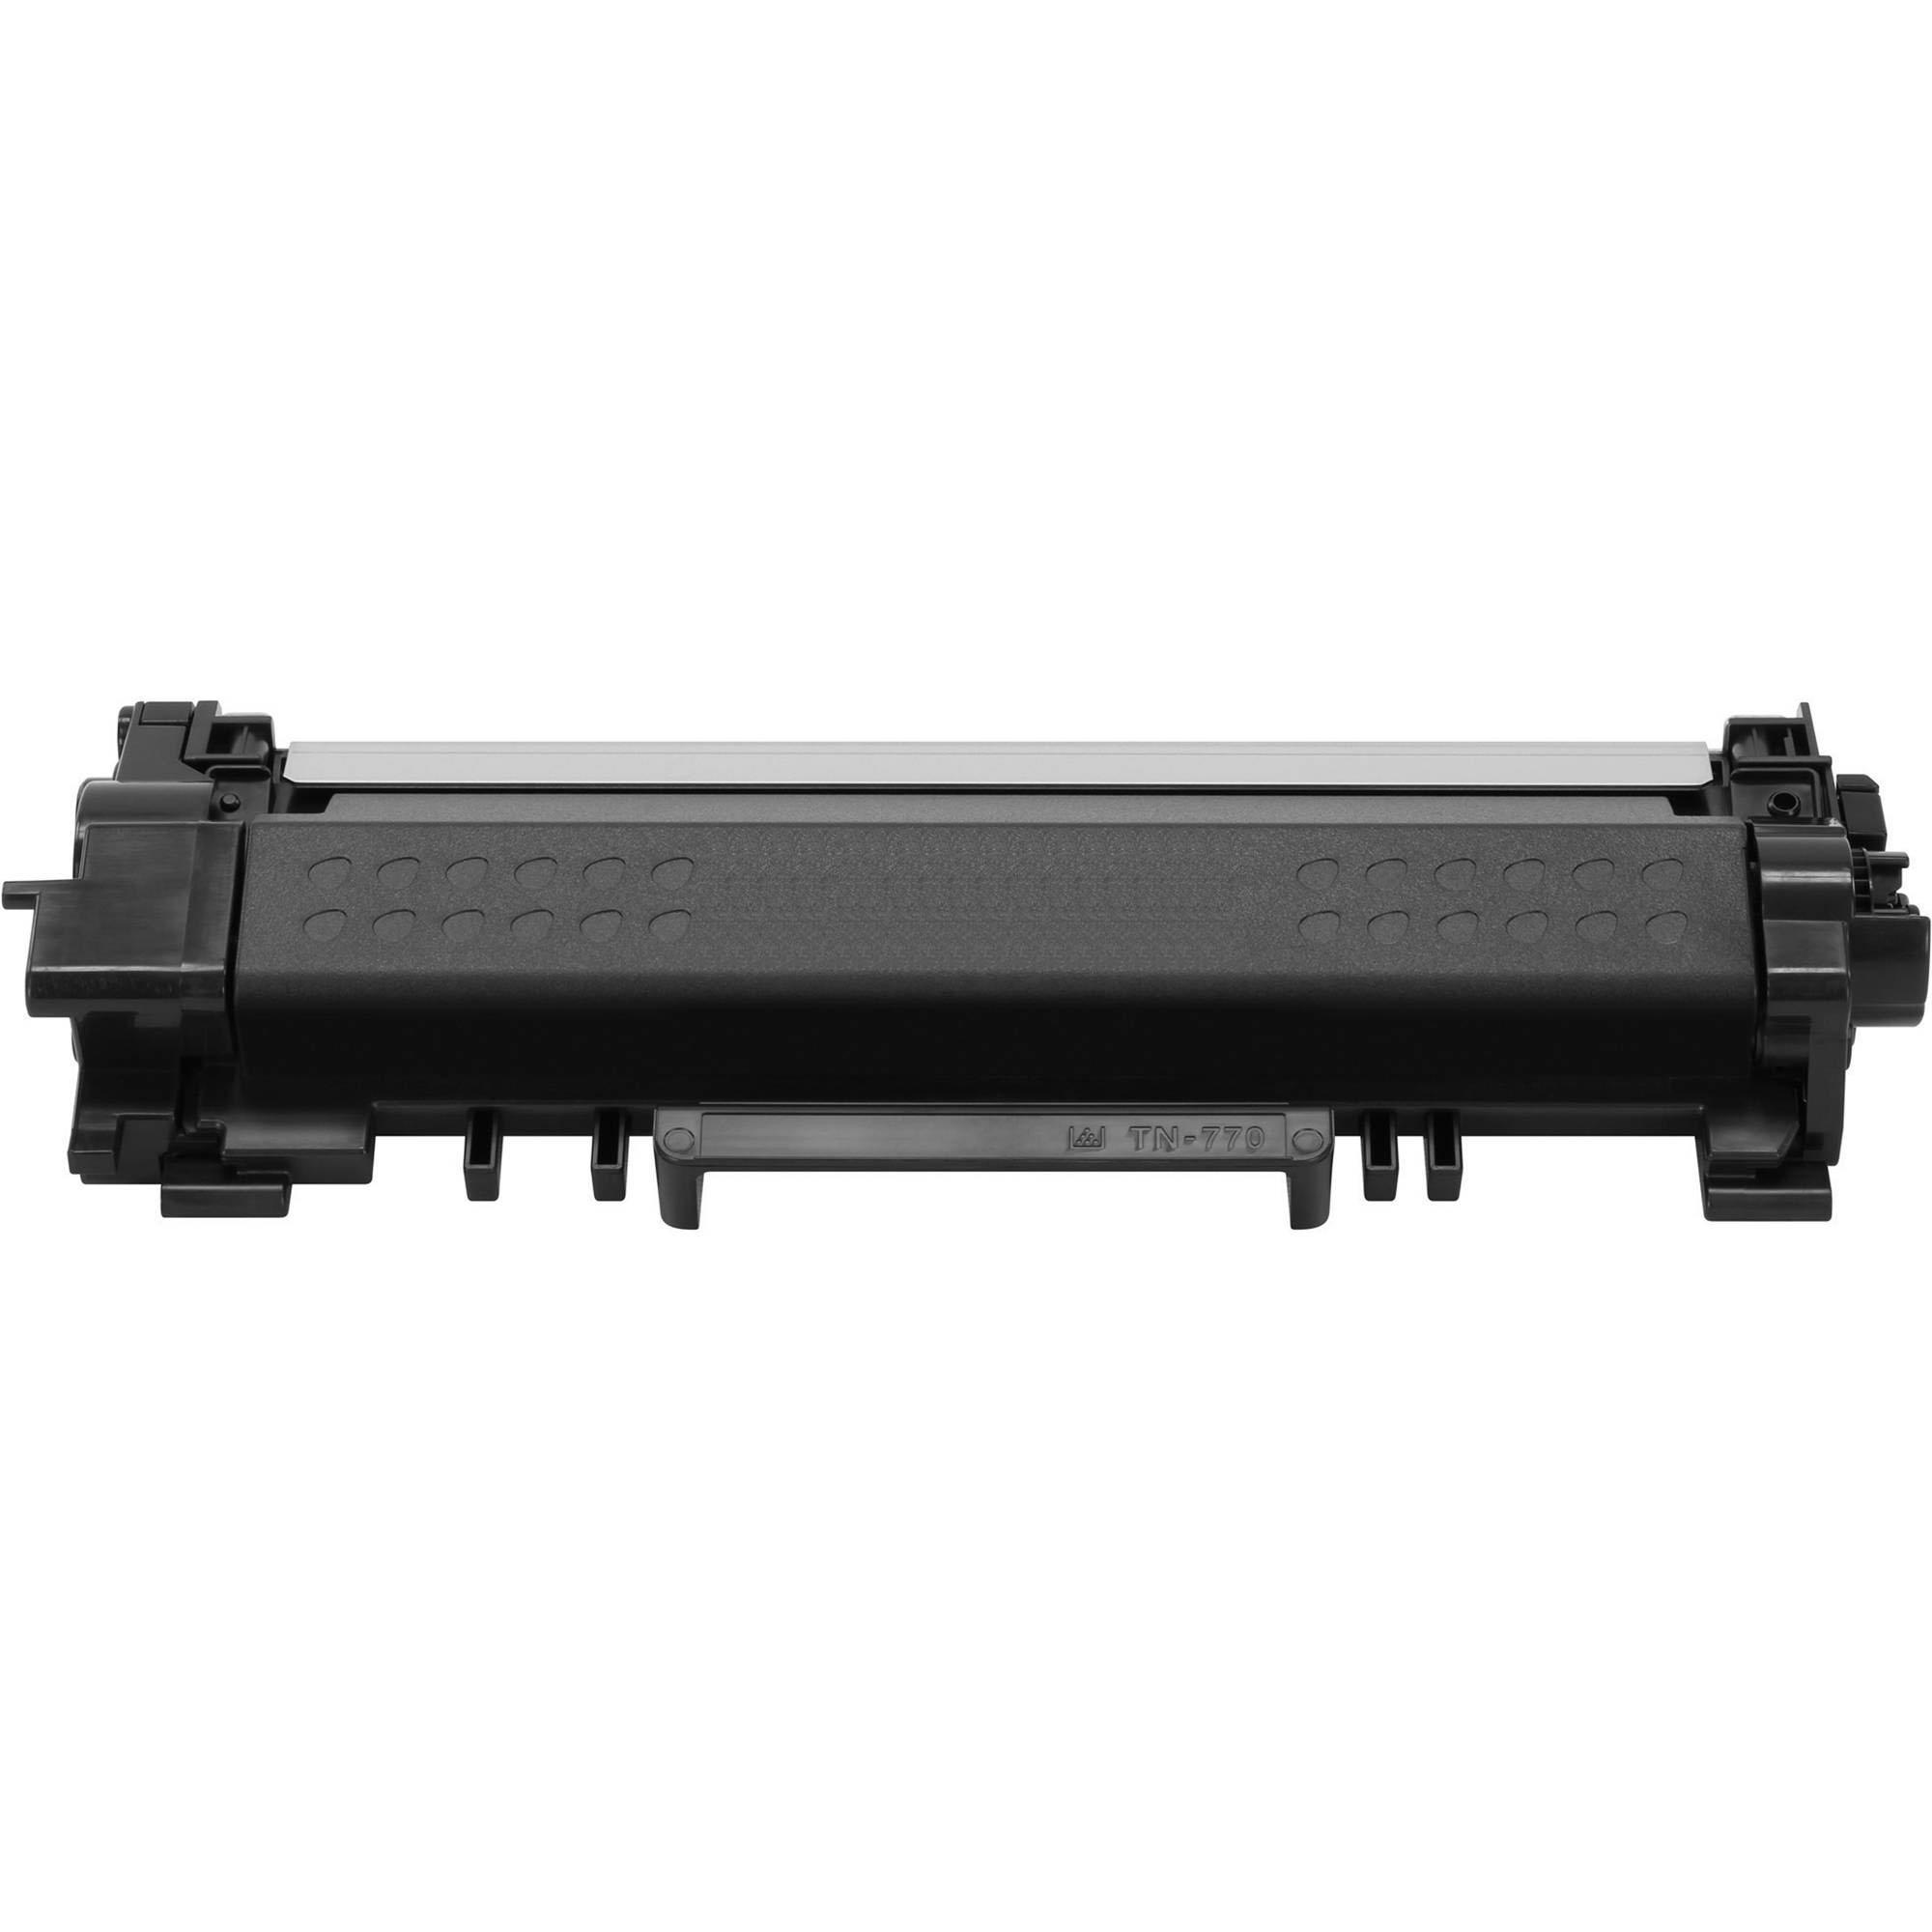 Brother TN770 Compatible Black Toner Cartridge Extra High Yield - No Chip - Economical Box